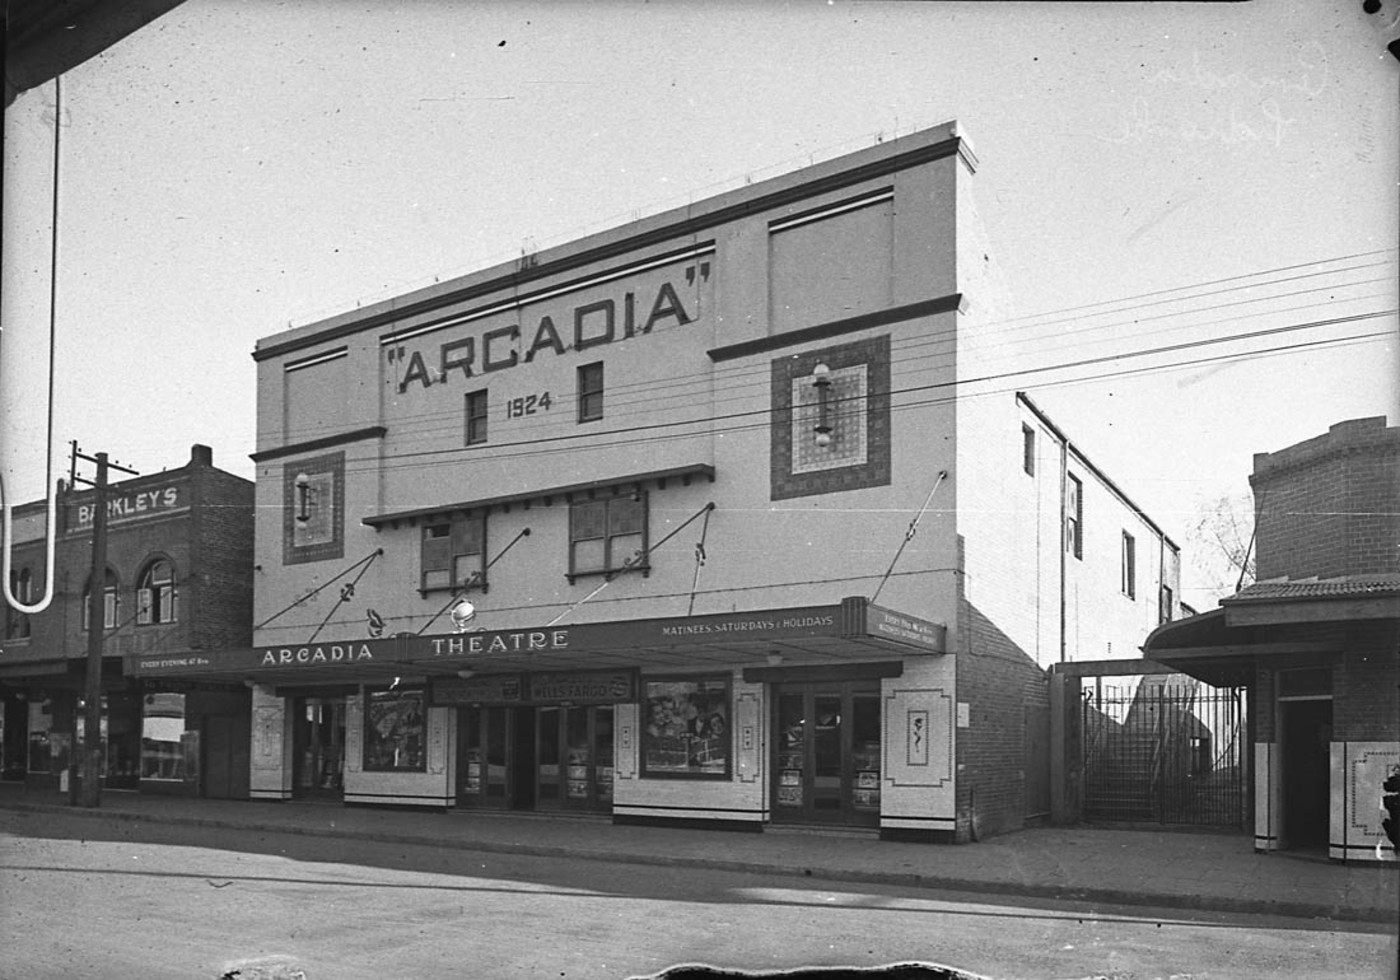 27738 Lidcombe Artcadia exterior by day before remodelling.jpg English: Lidcombe Artcadia: exterior by day (before remodelling) Date 1942 Source http://www